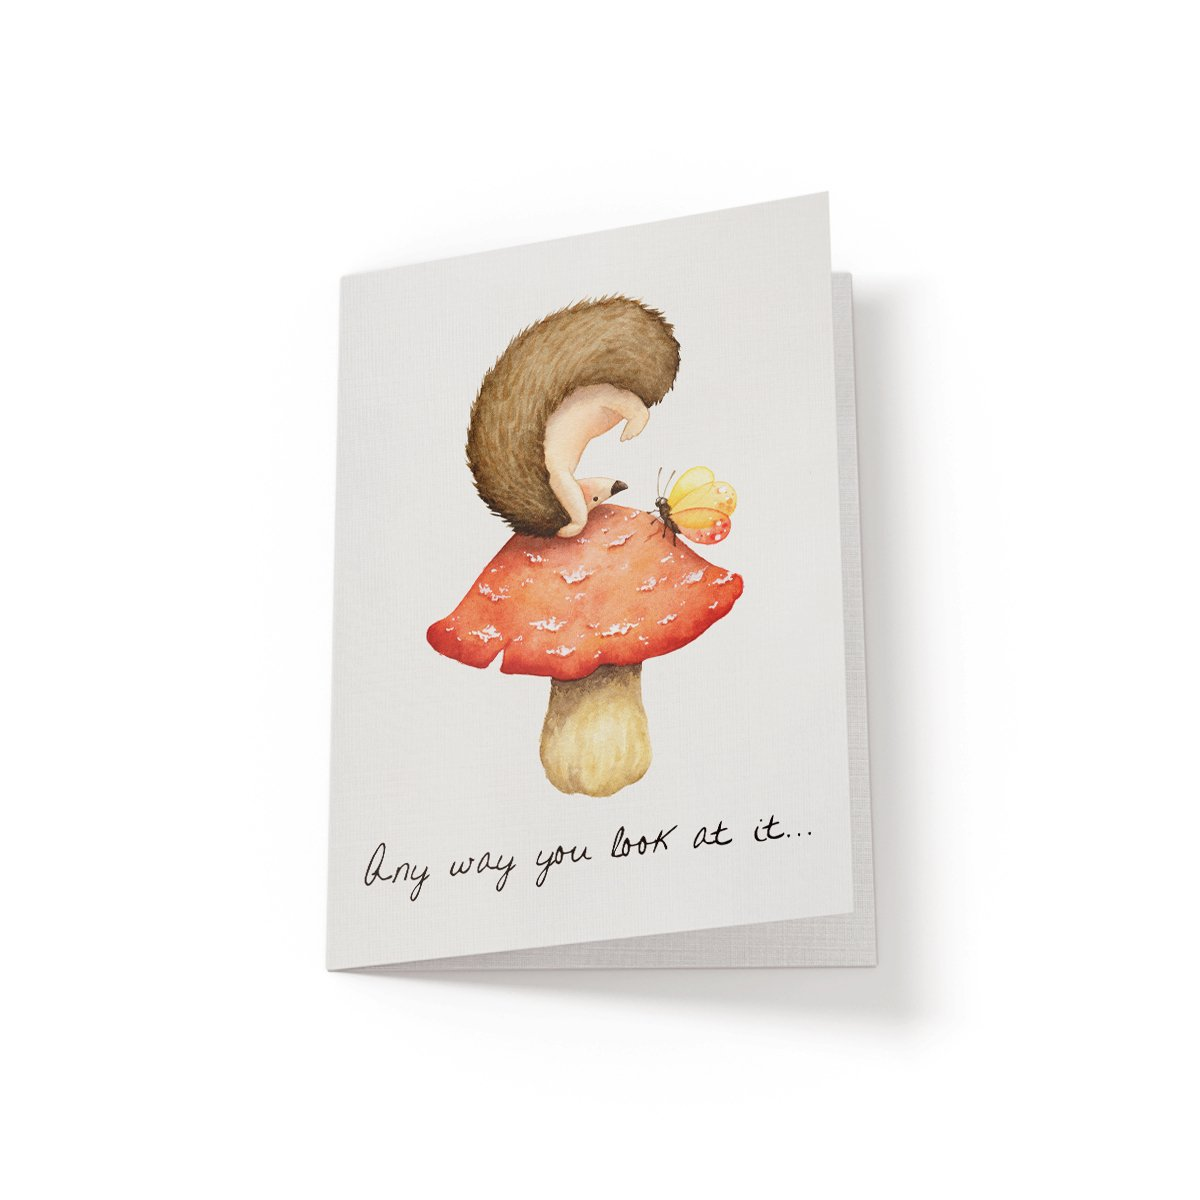 Any way you look at it - Greeting Card - Netties Expressions